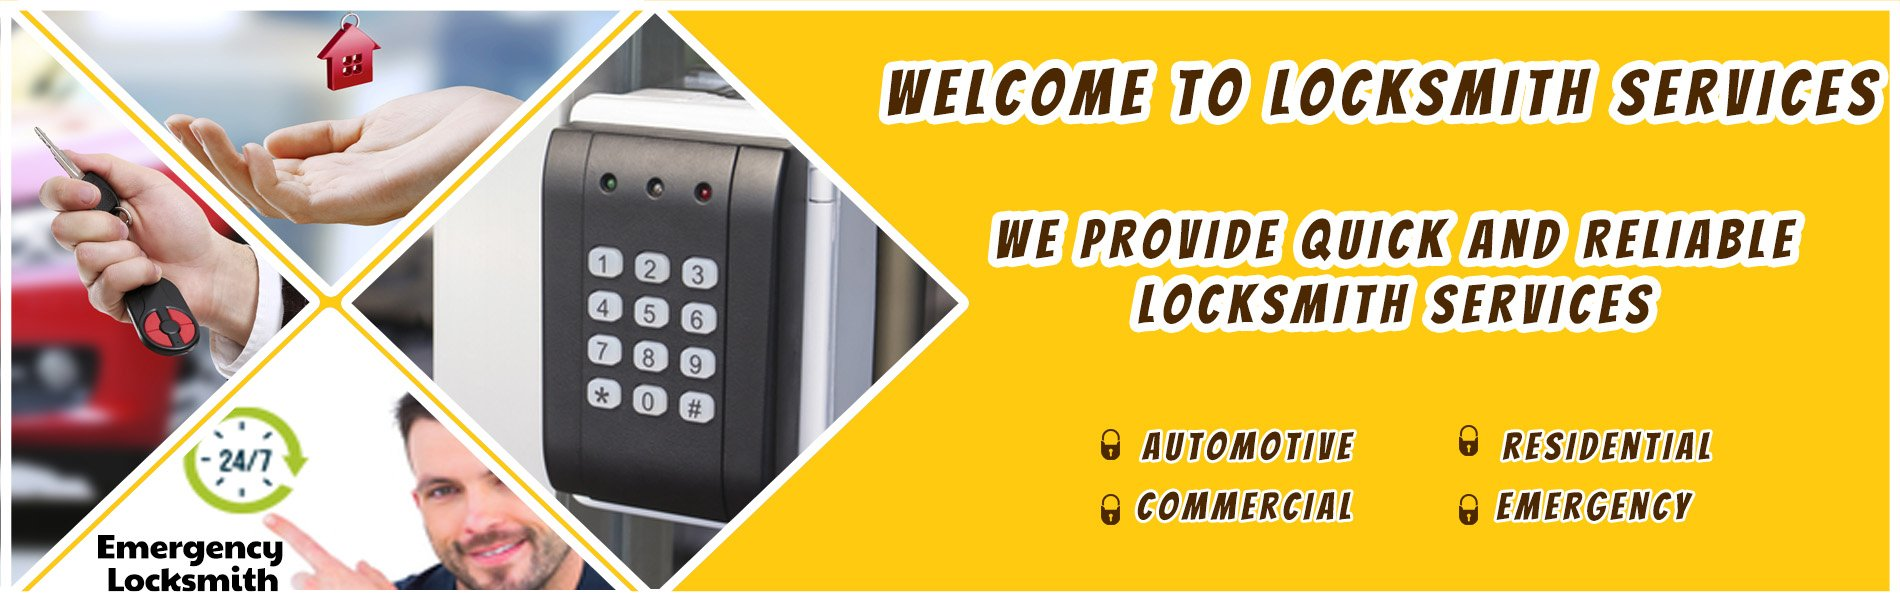 Expert Locksmith Store Riverside, RI 401-424-9801